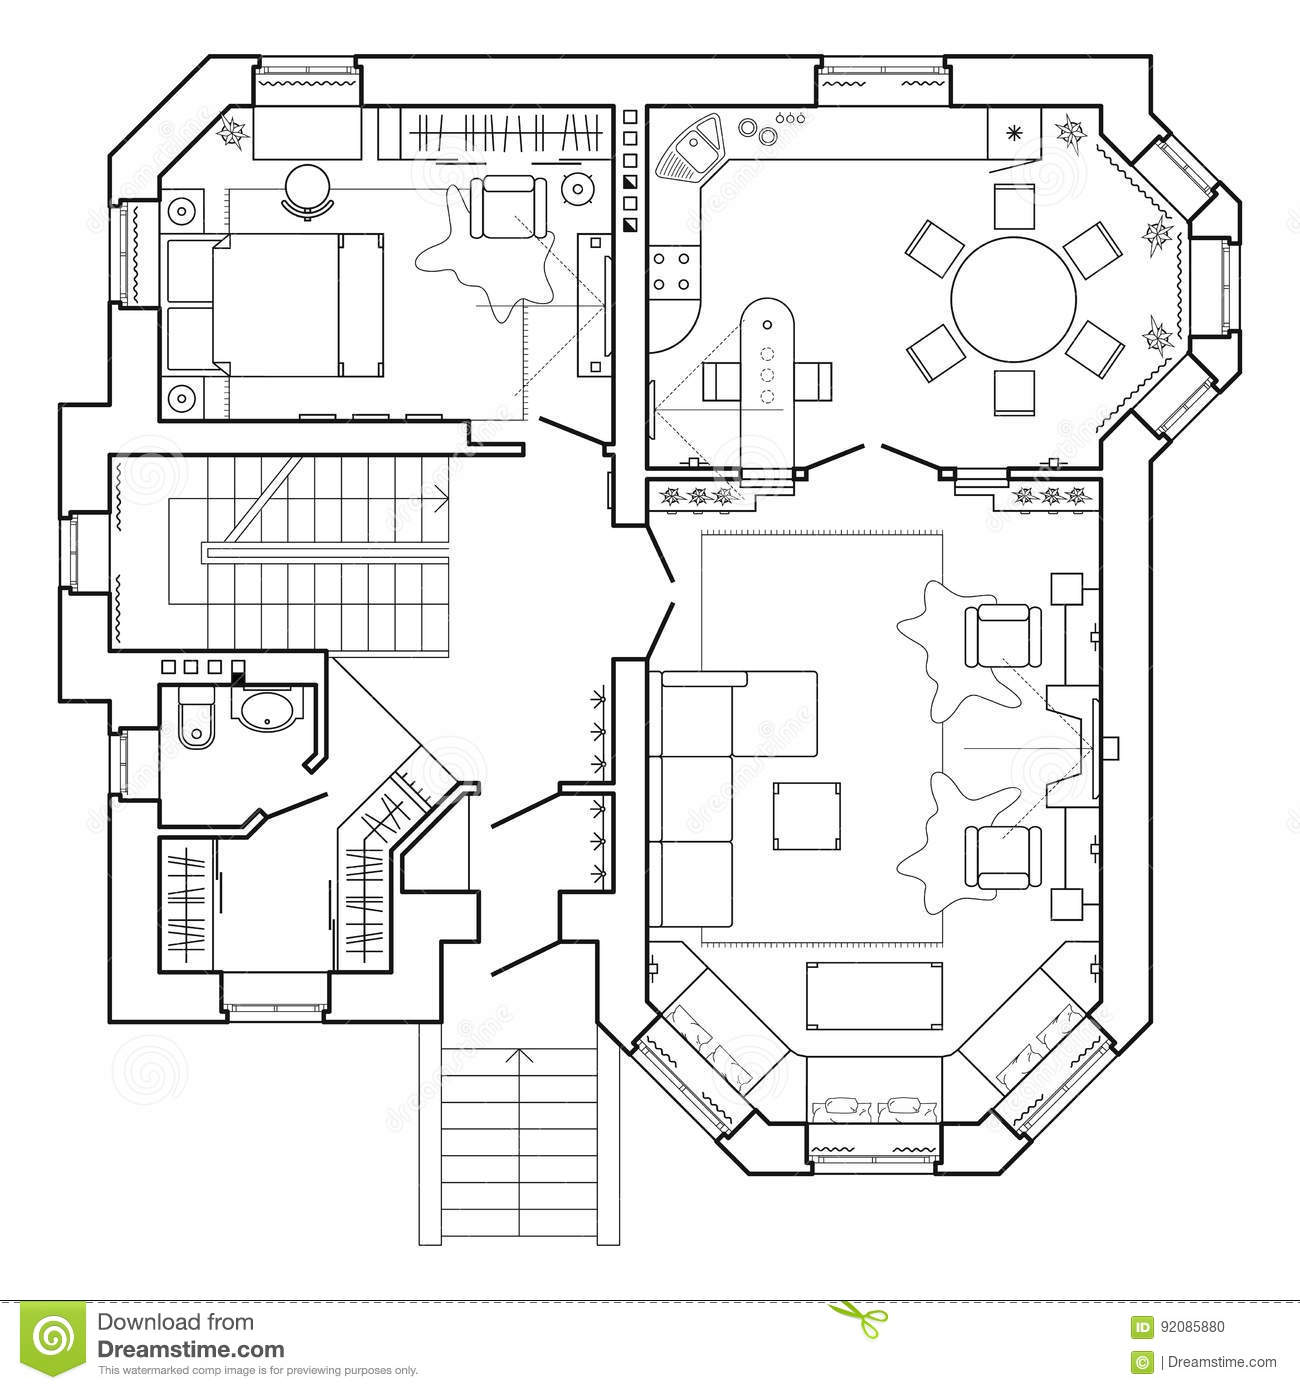 Plan architectural noir et blanc d 39 une maison disposition for Plans de maison services d architecture